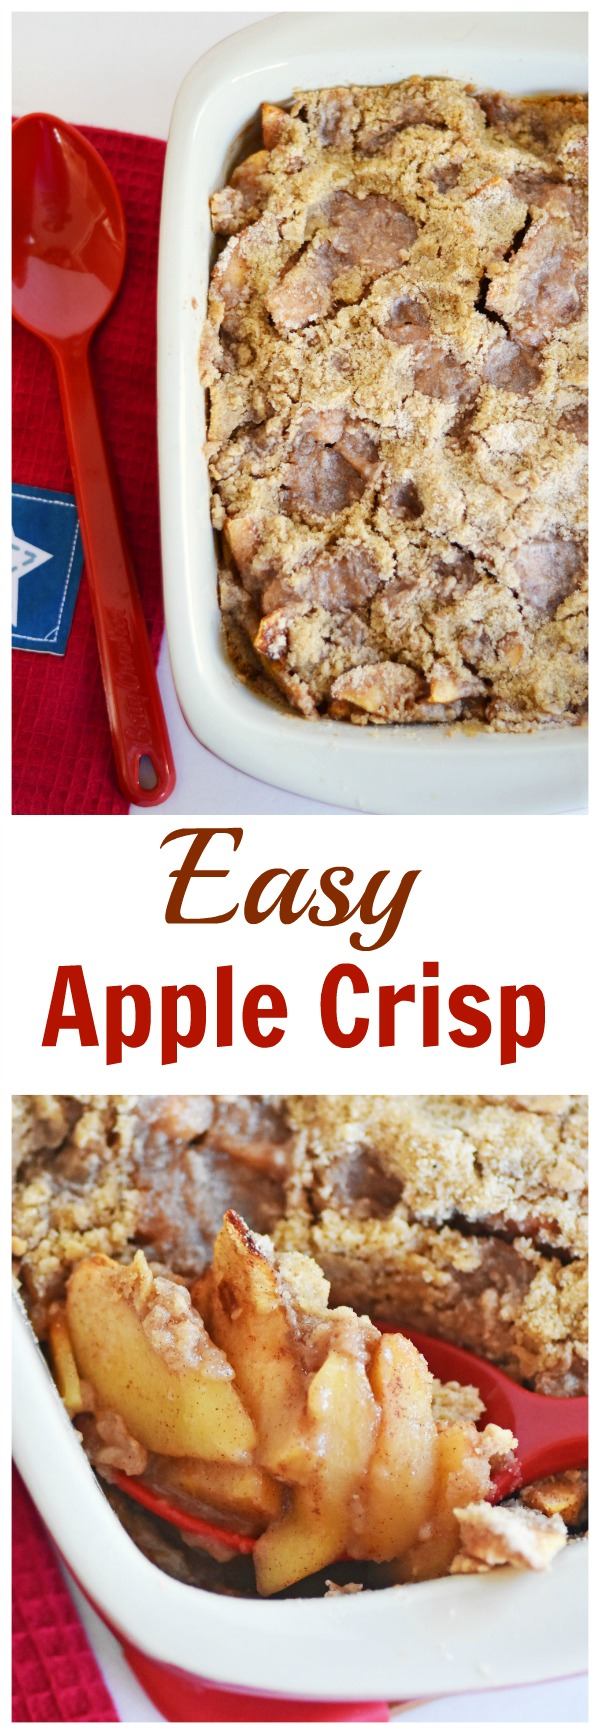 Easy-apple-crisp